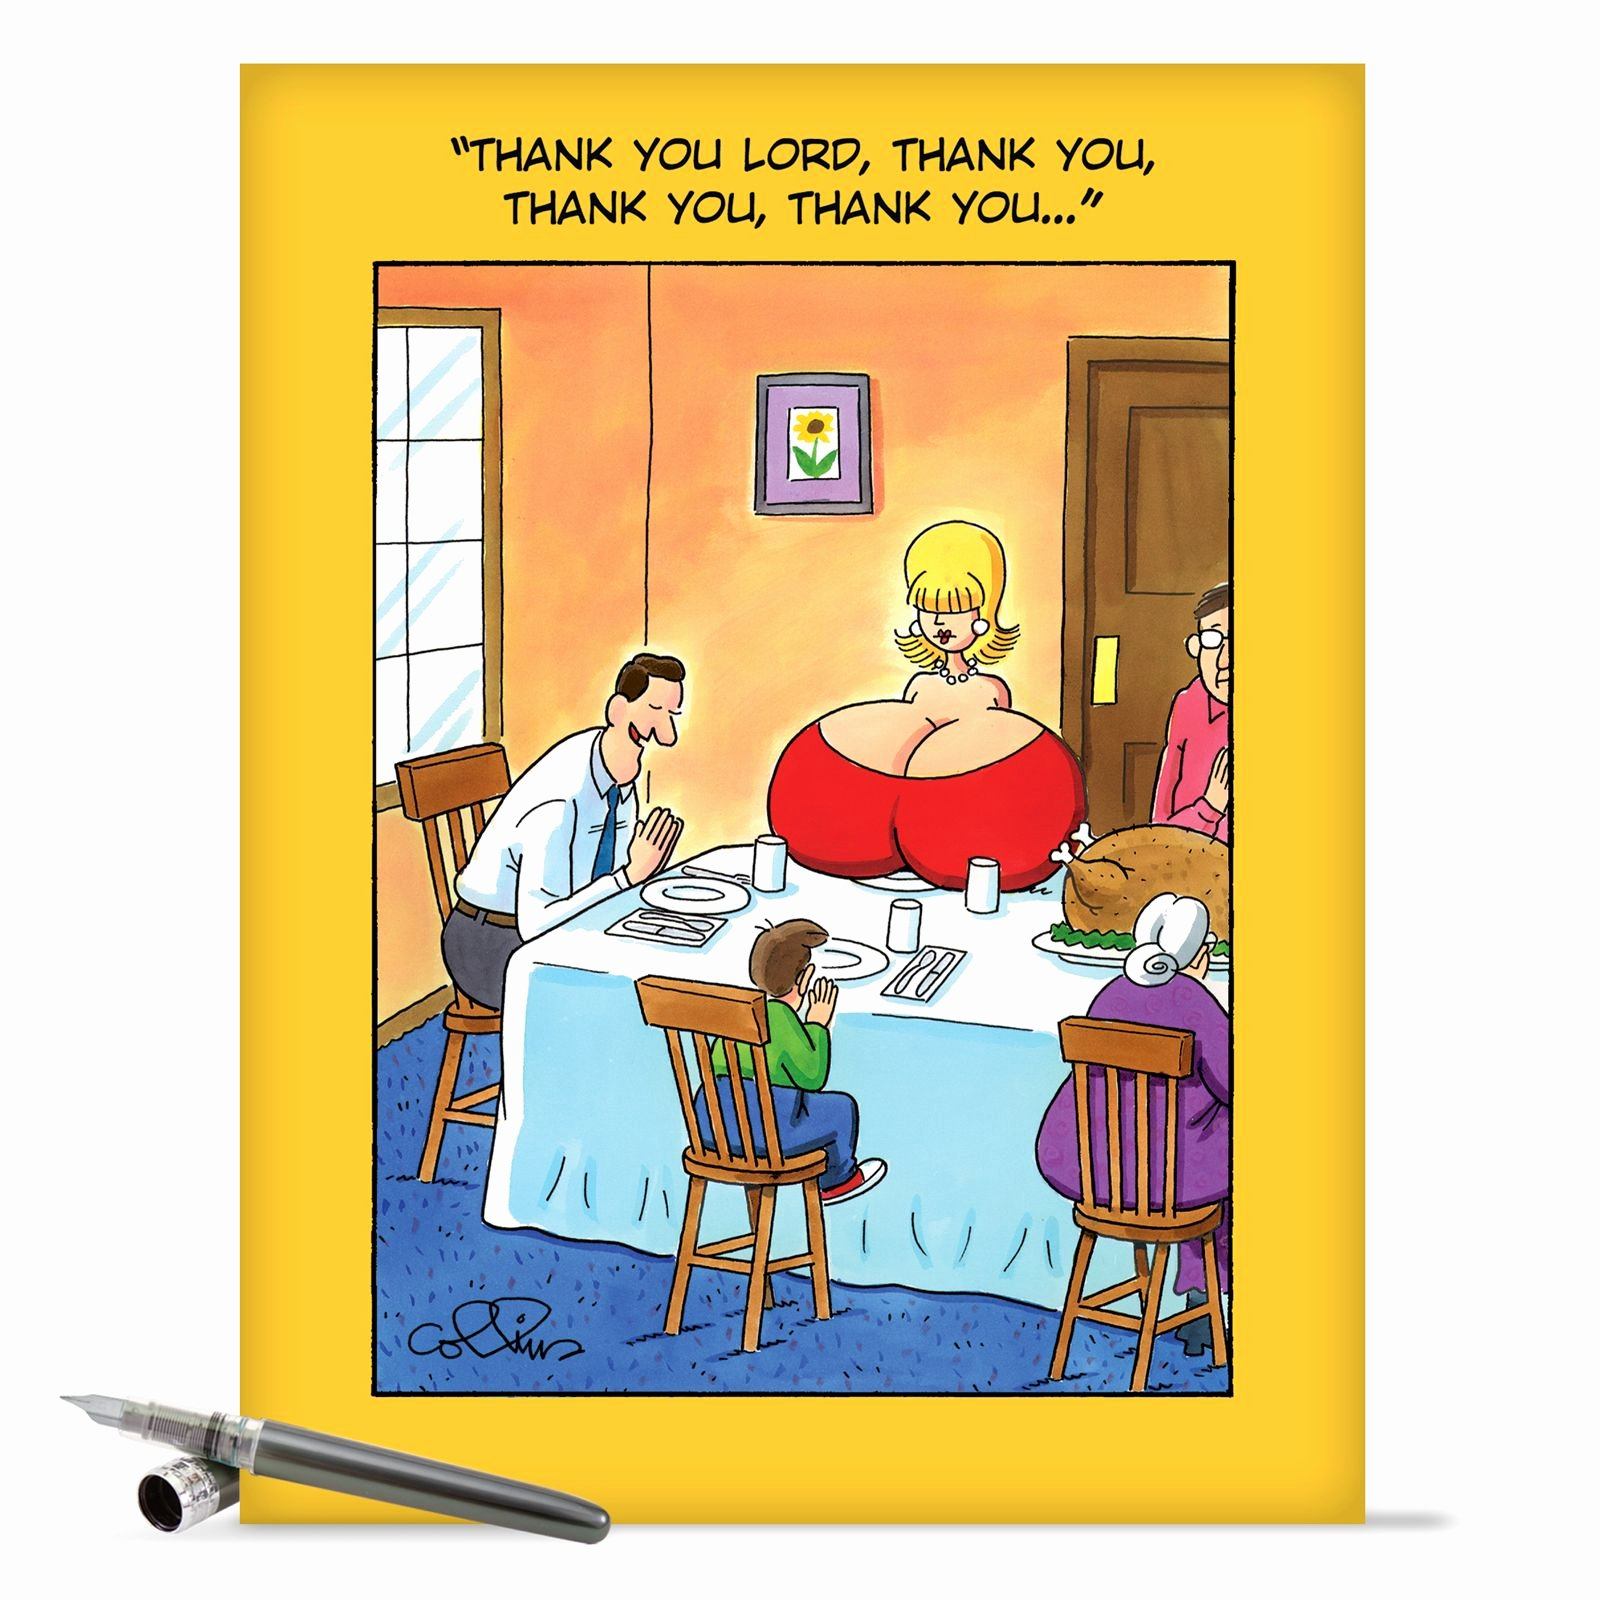 Funny Thank You Messages Best Of J8420 Jumbo Funny Birthday Card Thank You Lord with